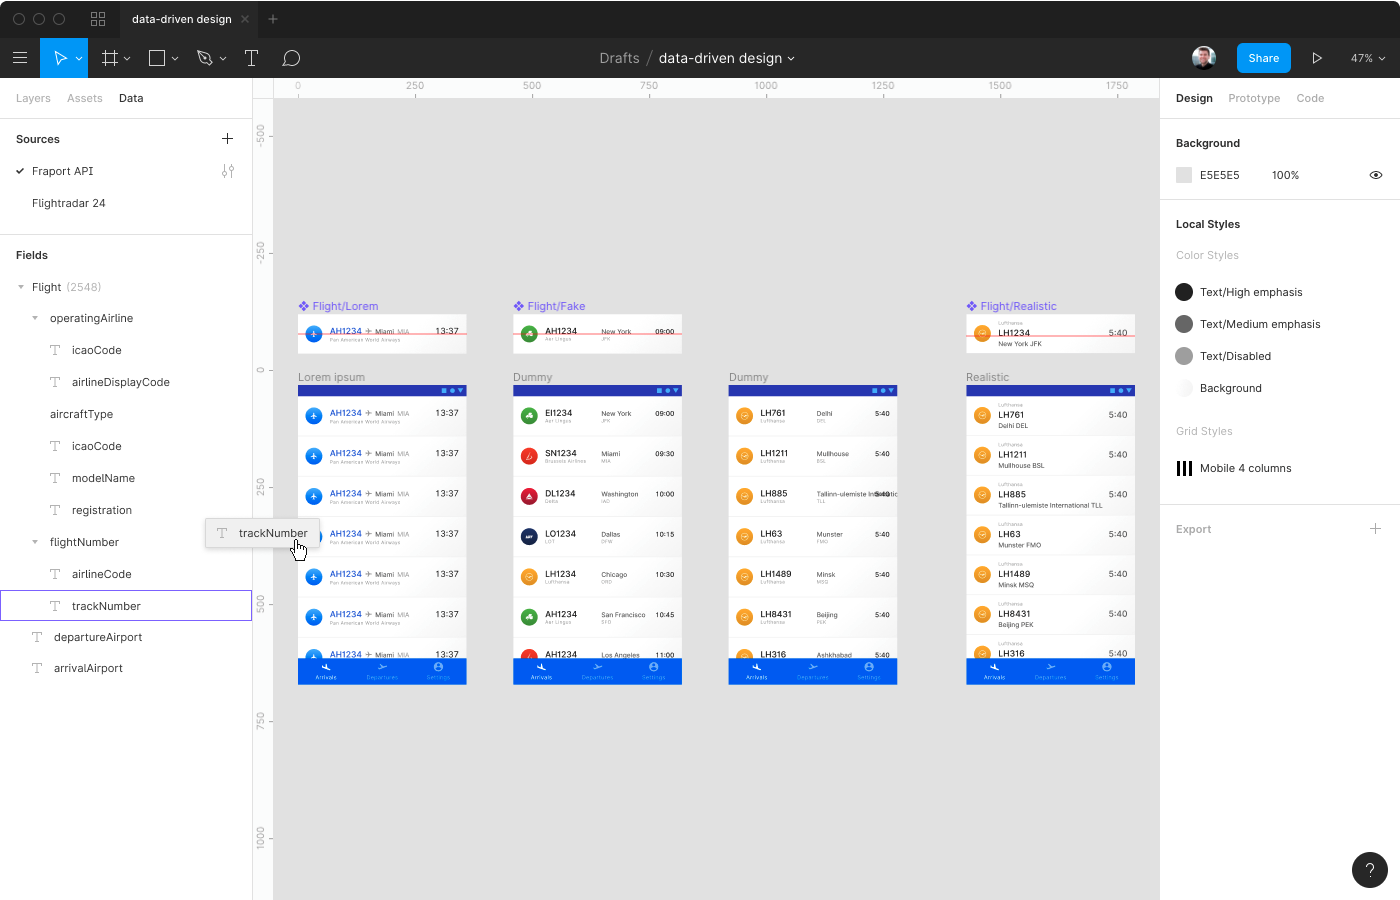 A mock-up of Figma with a data panel